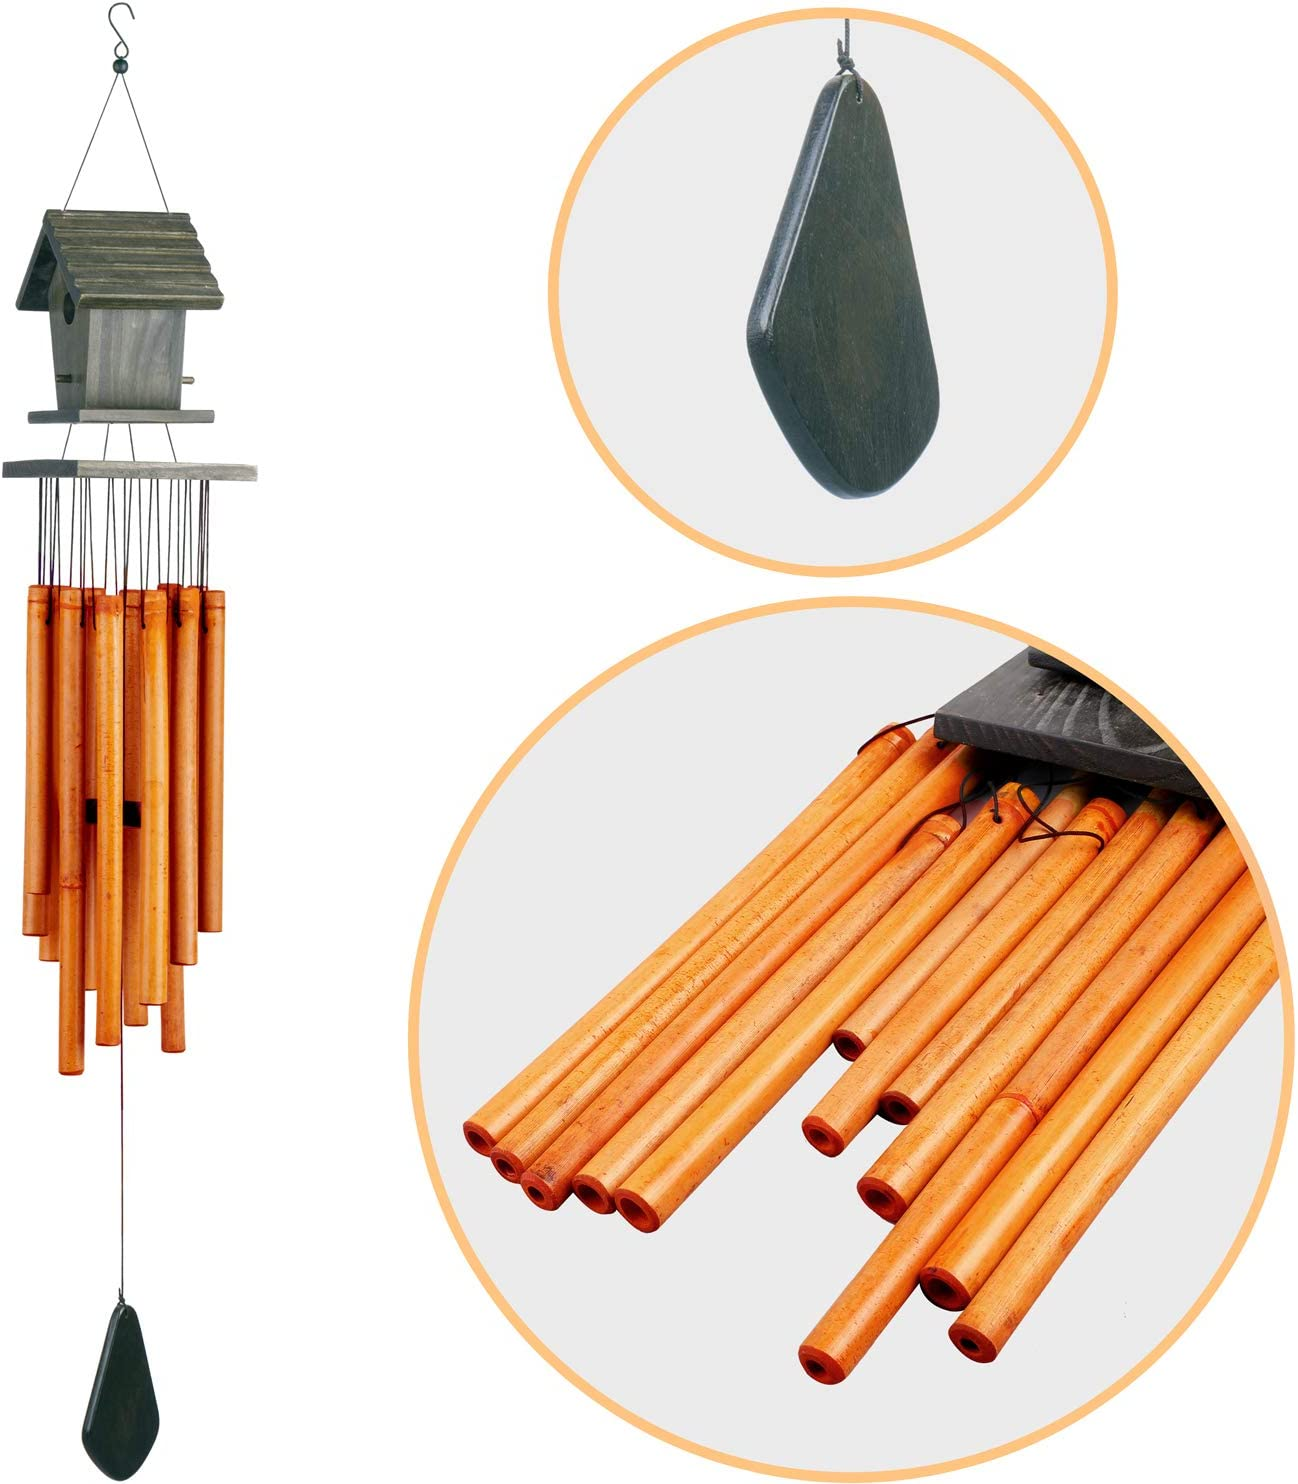 DIY Paint Your Own Wooden Wind Chime Wood Windchime Kids Decoration LS